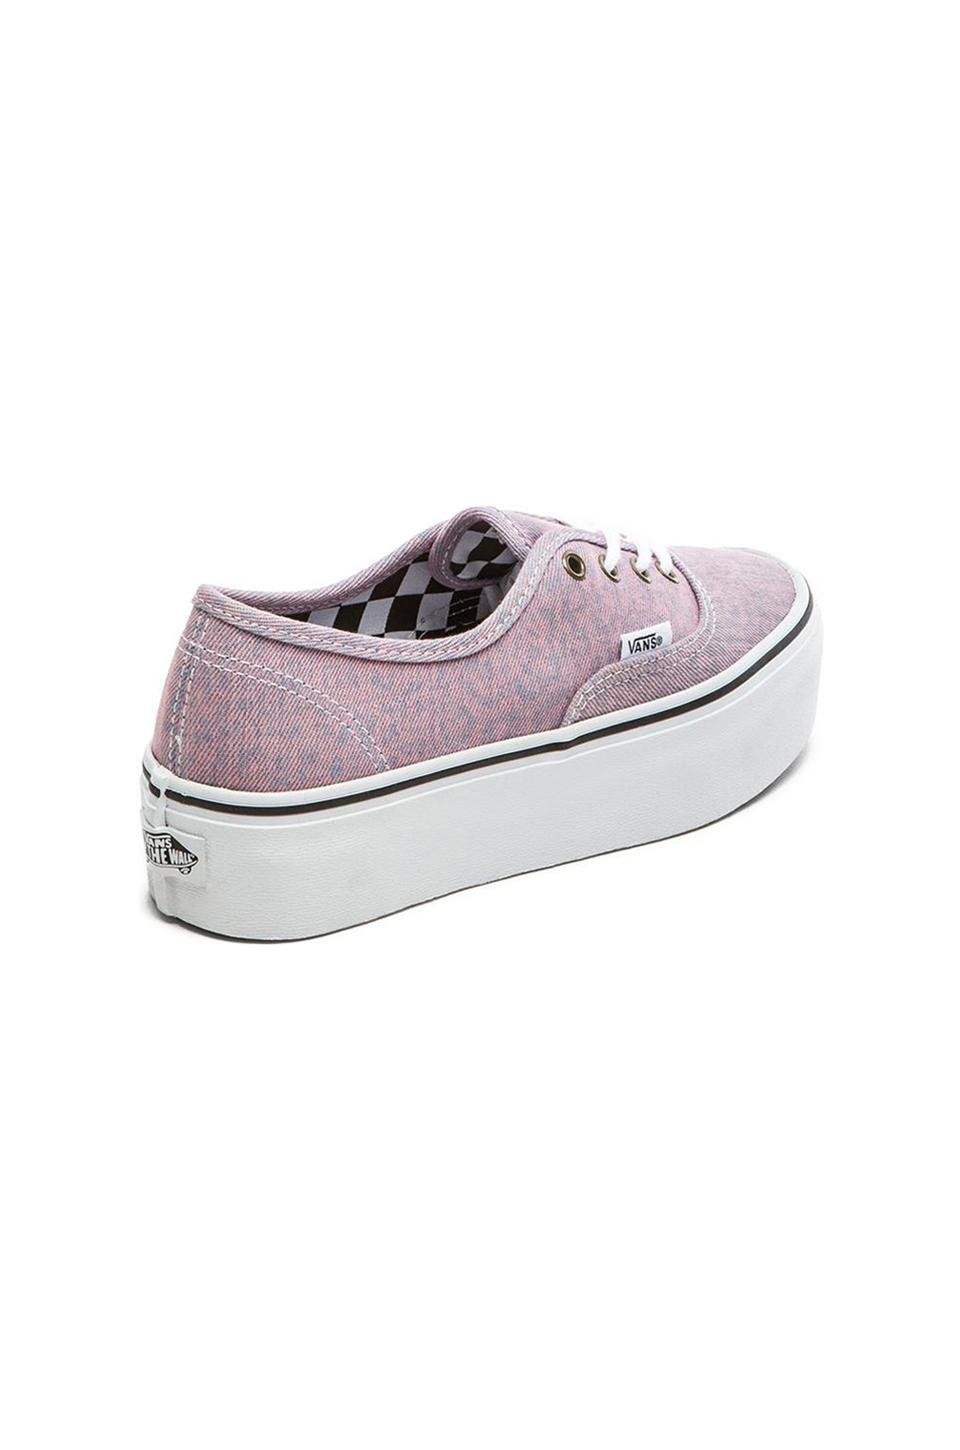 ac13e4bef8 Lyst - Vans Authentic Washed Denim Platform Sneaker in Pink